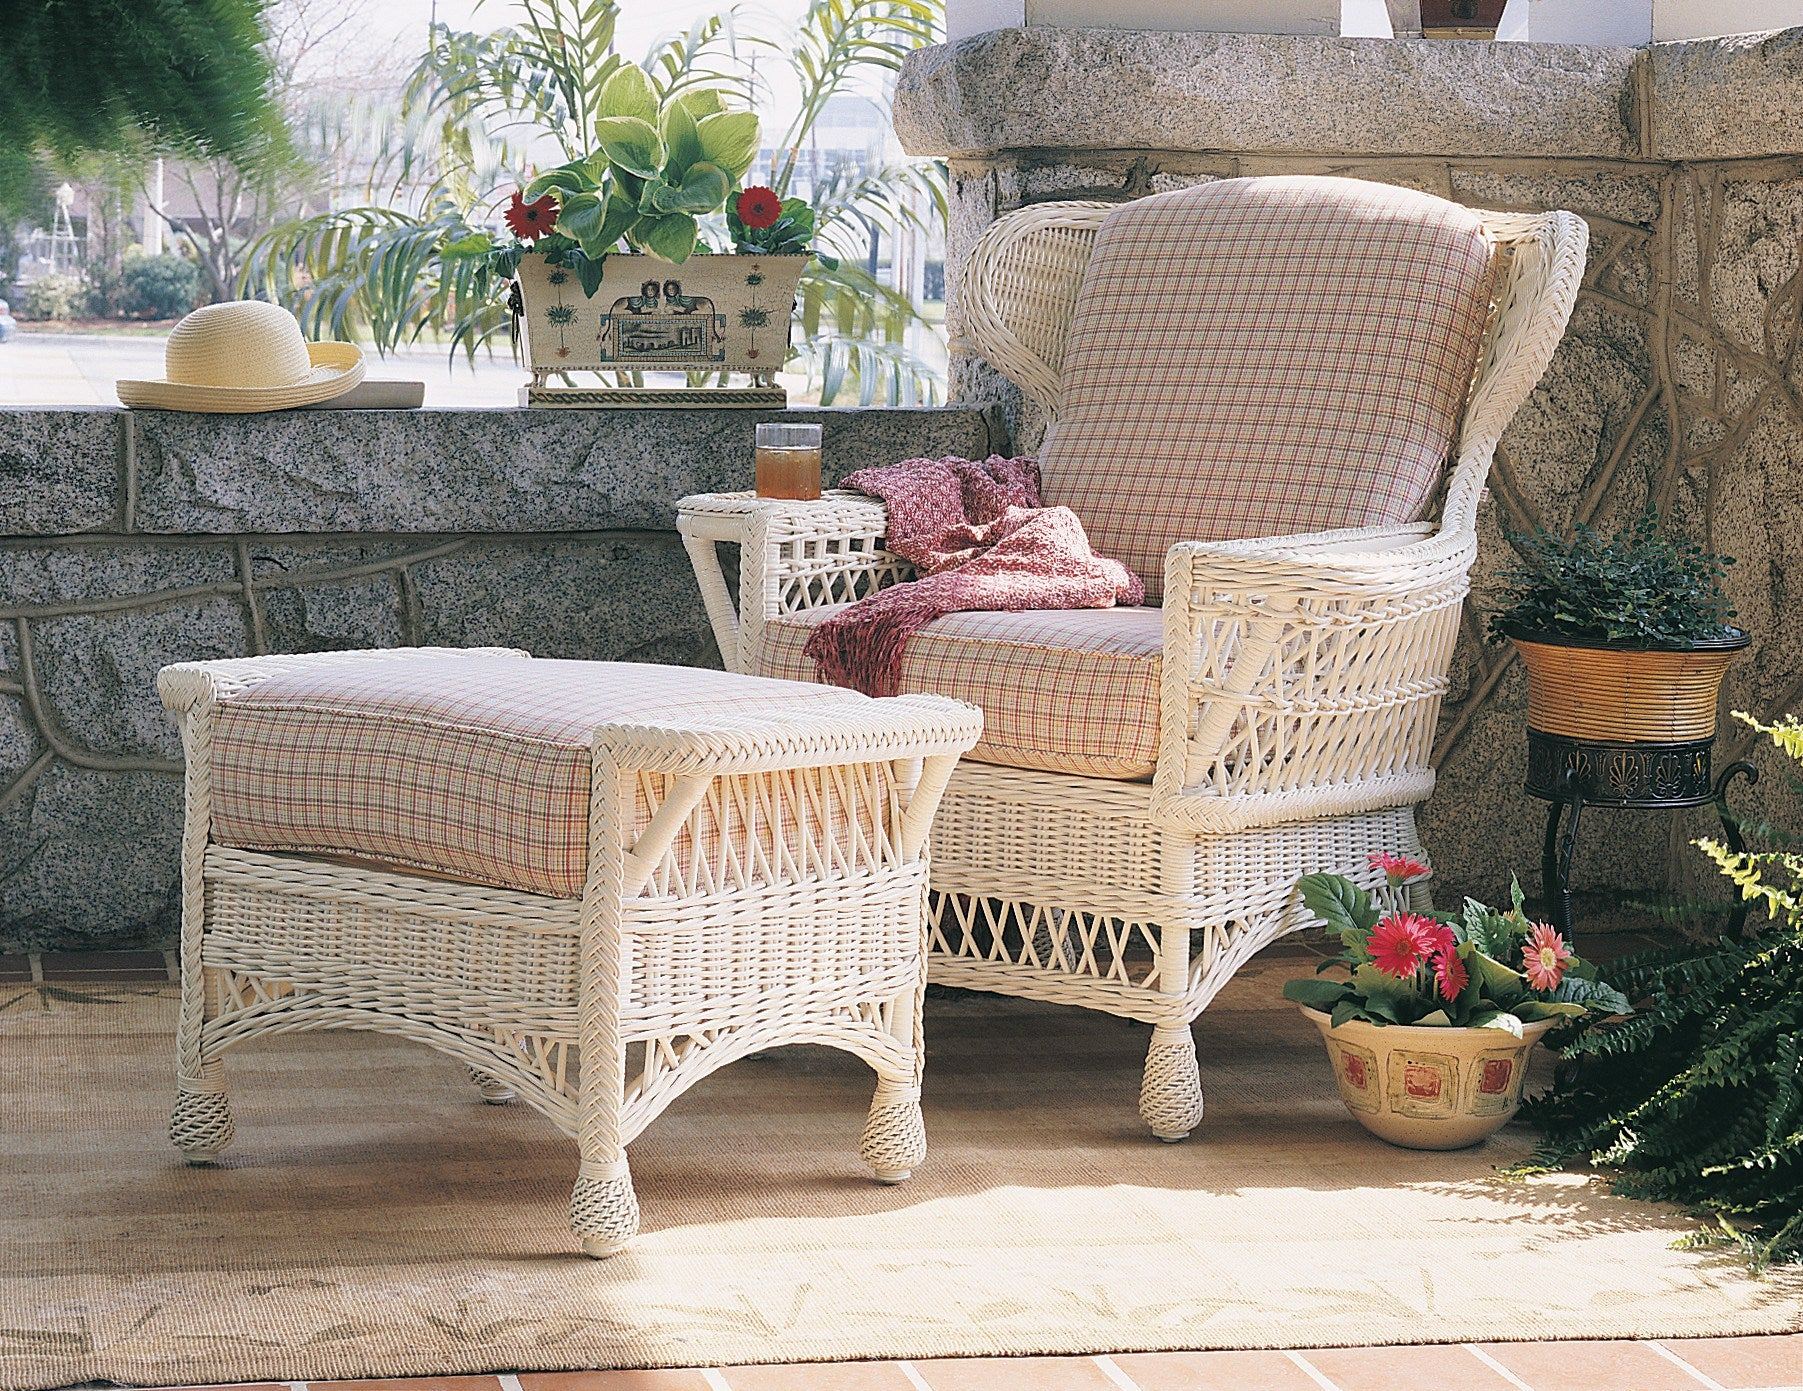 Designer Wicker & Rattan By Tribor Concord Arm Chair by Designer Wicker from Tribor Chair - Rattan Imports